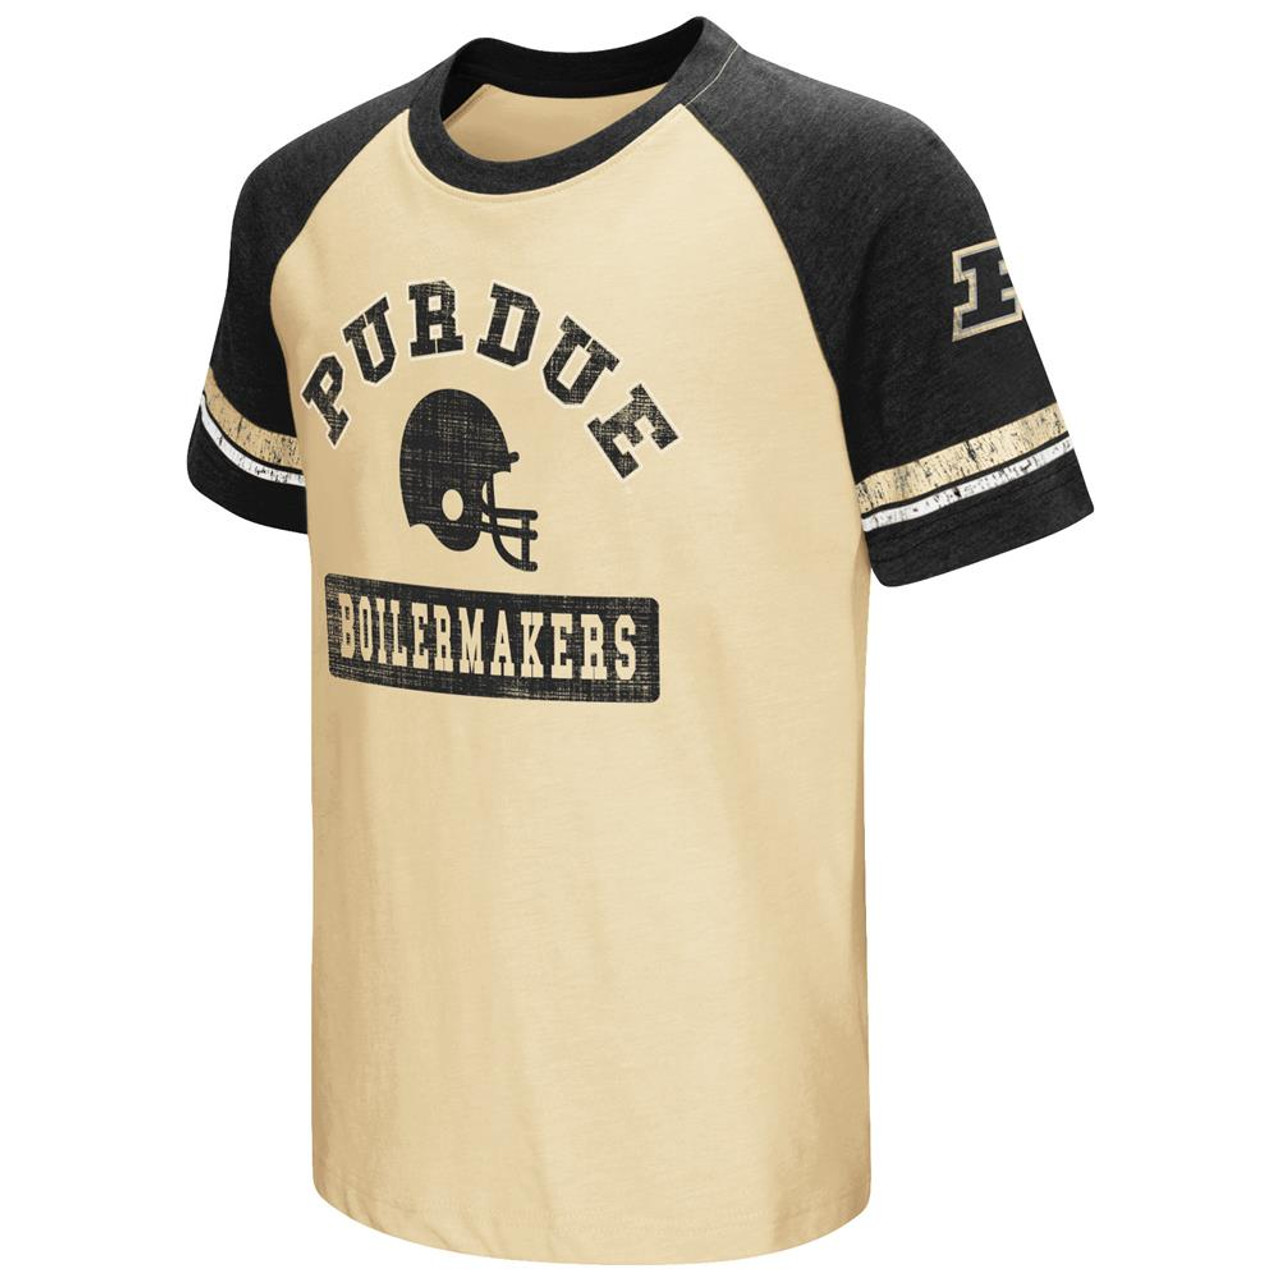 Youth Short Sleeve Purdue University Graphic Tee